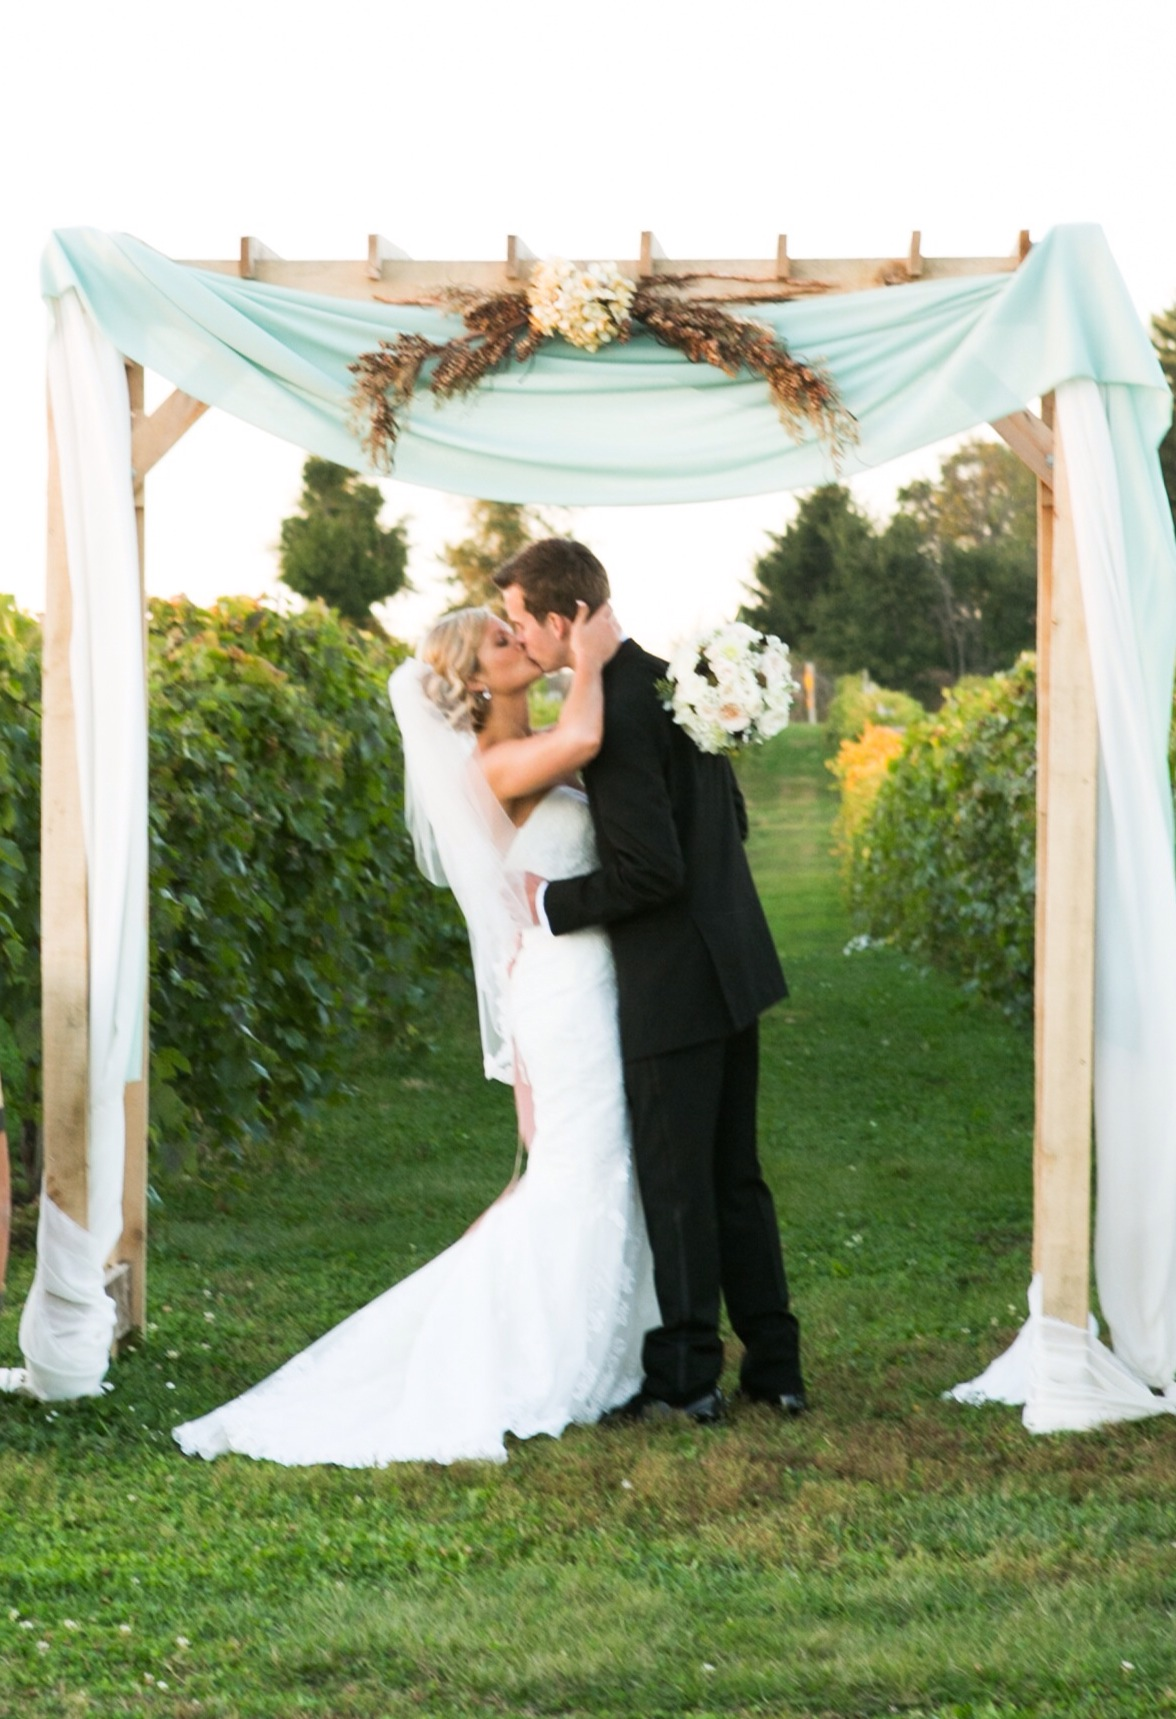 Acquaviva, Maple Park, will be CLOSED for a wedding